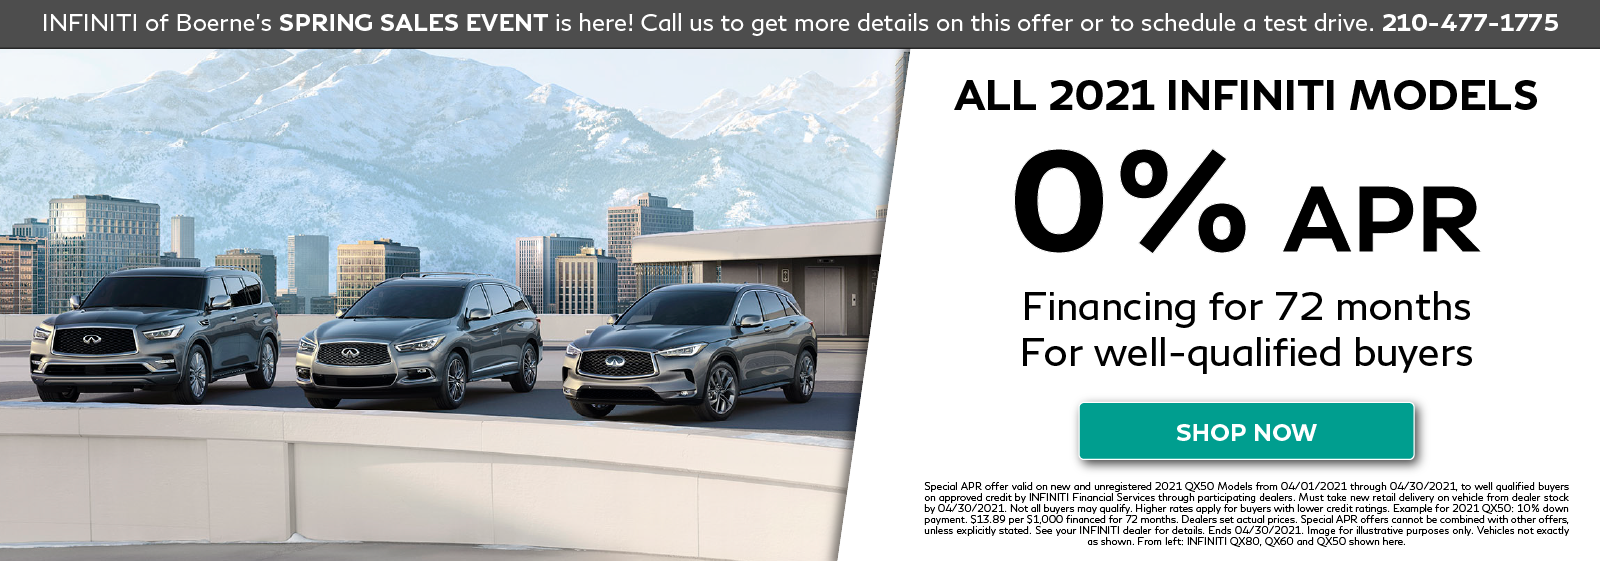 0% APR Financing on all new 2021 INFINITI models. Click to view special.